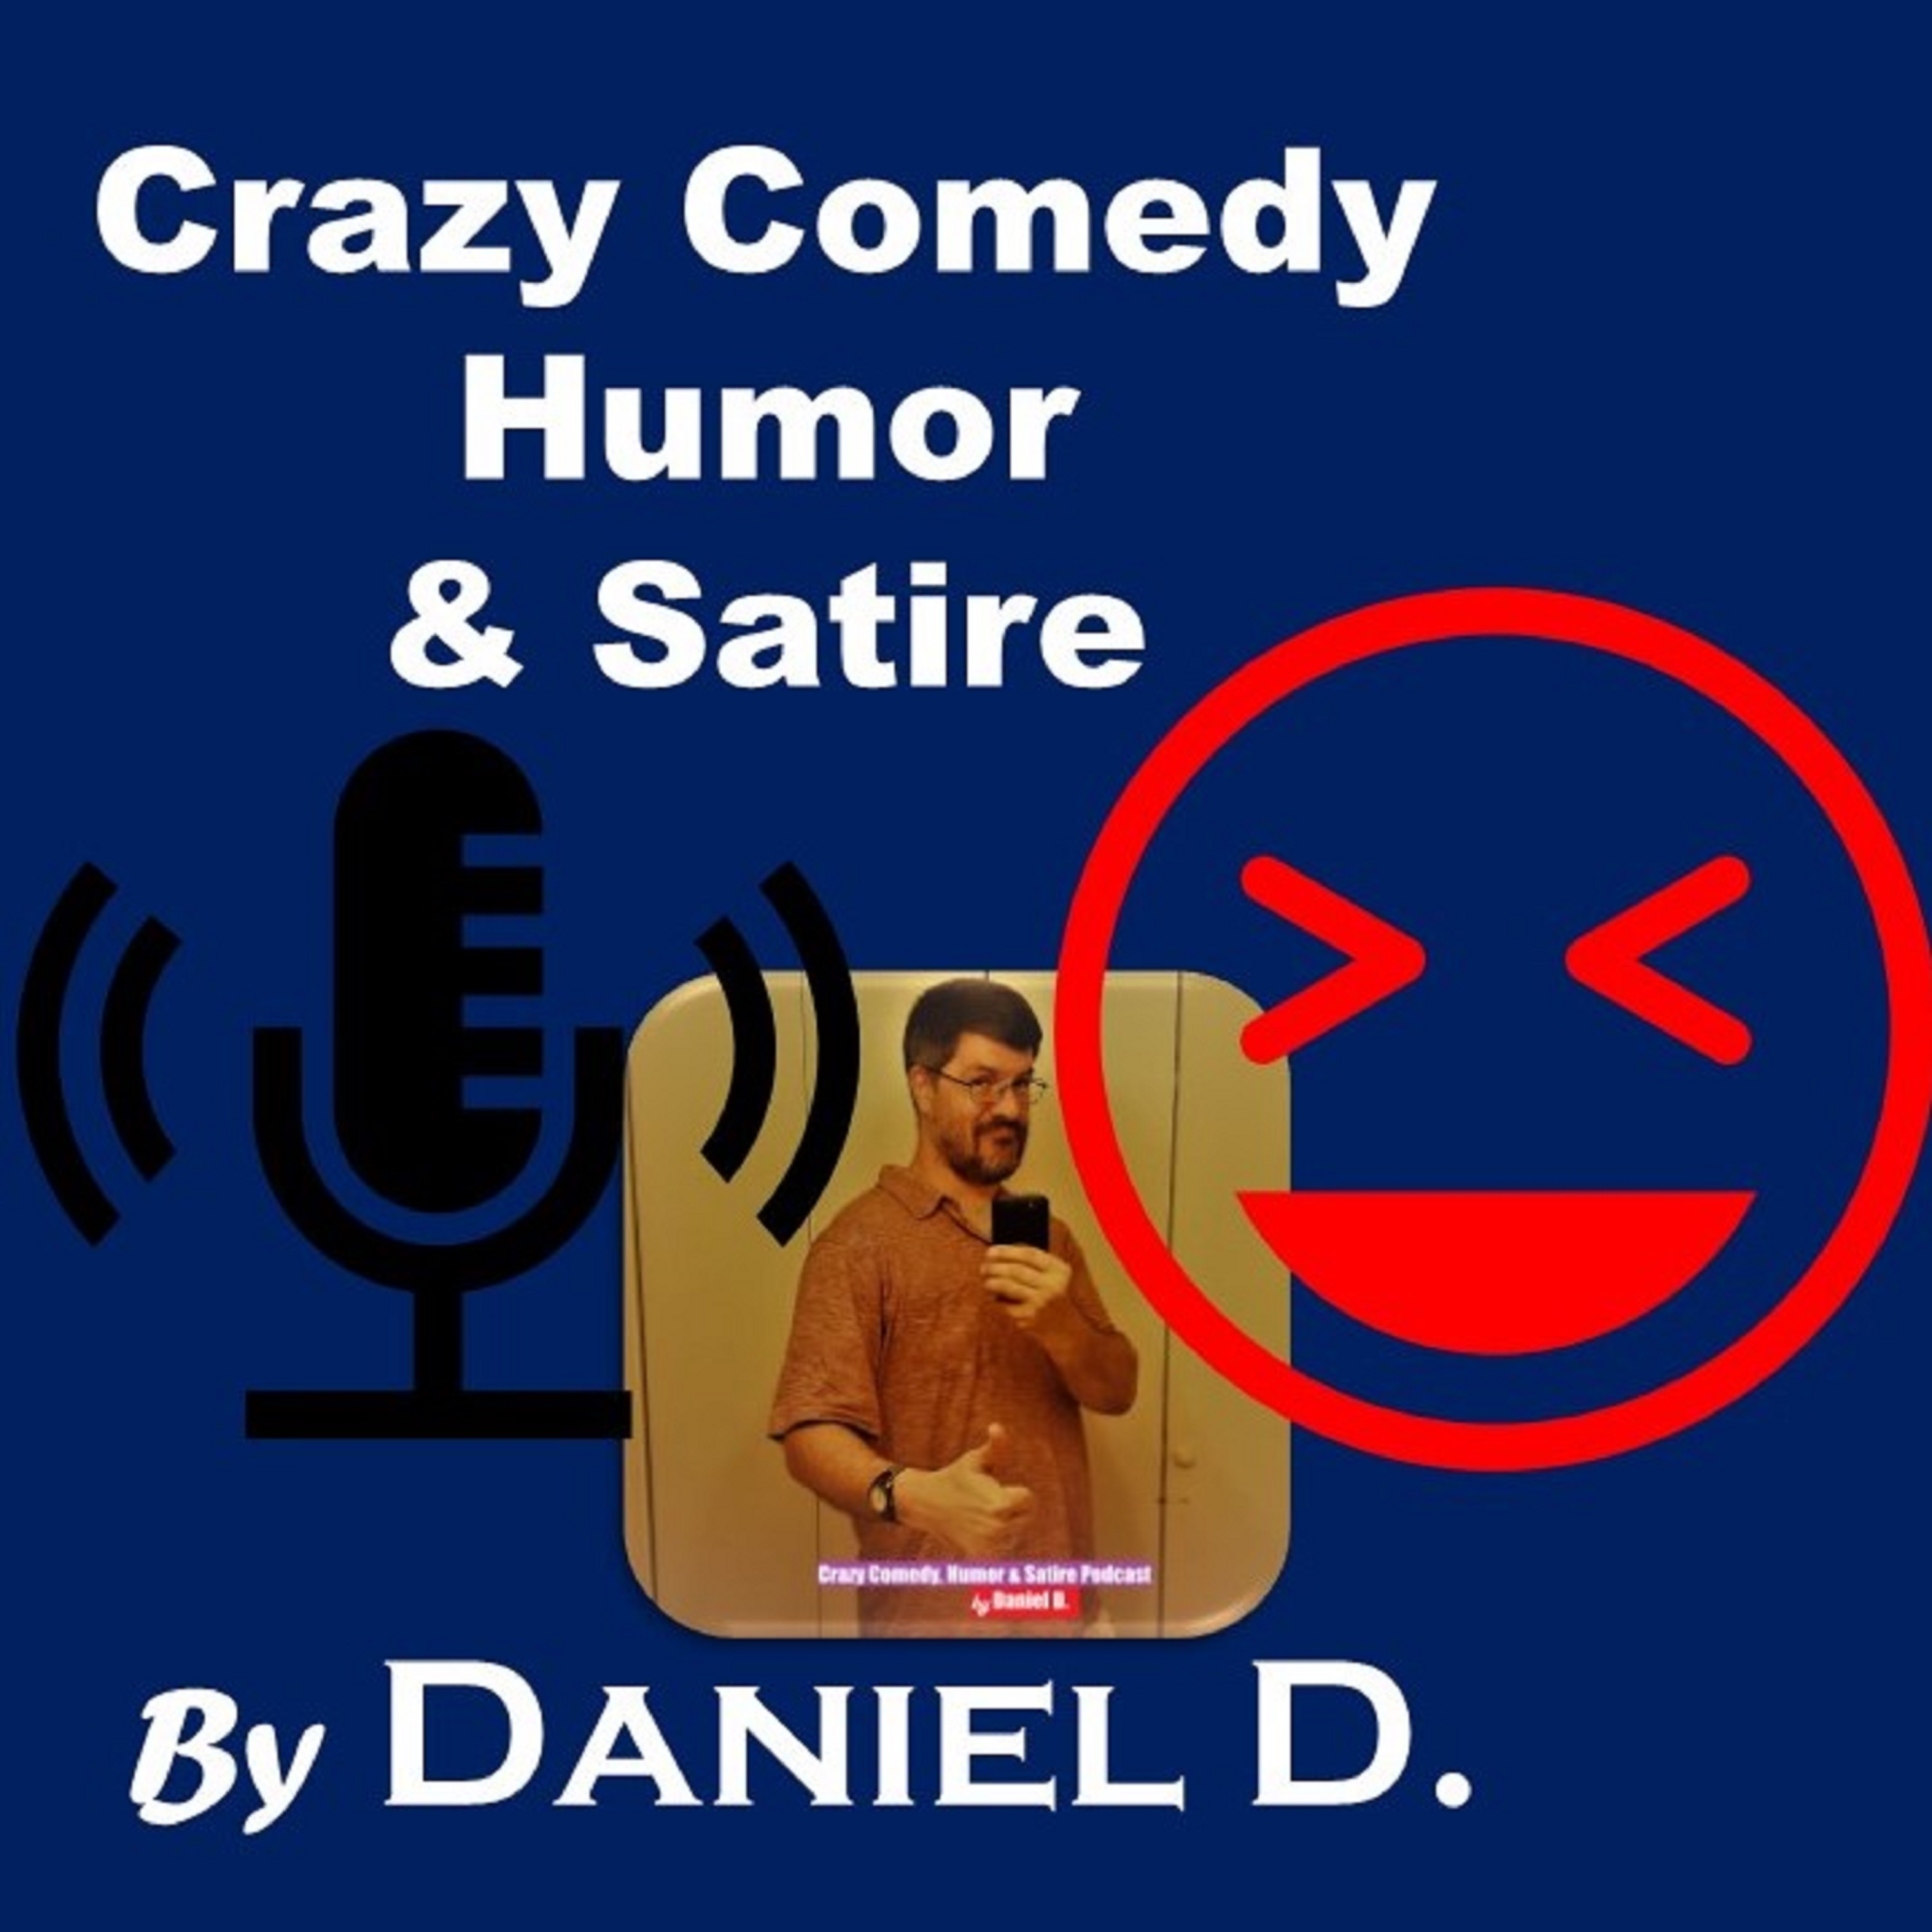 Artwork for Episode 43 of The Crazy Comedy, Humor & Satire Podcast